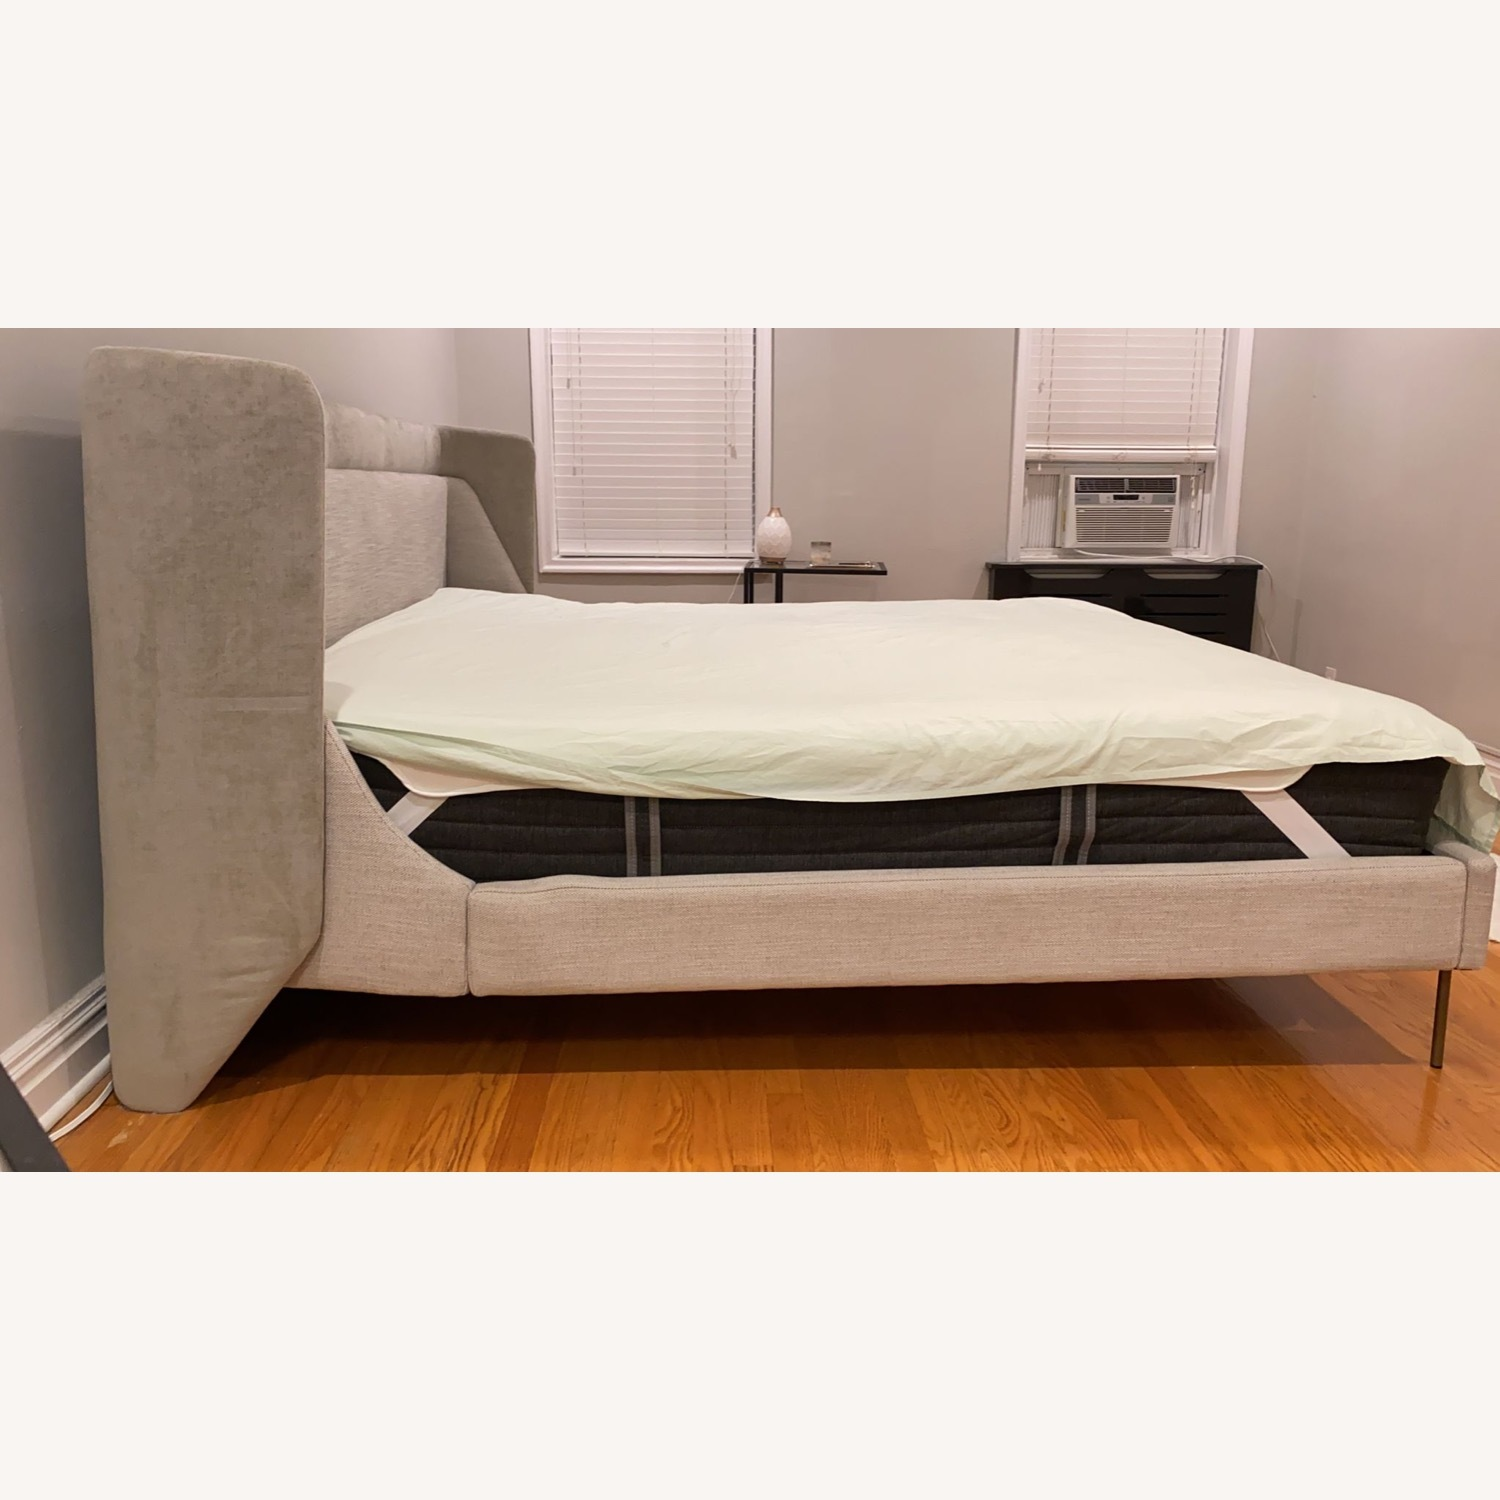 West Elm Thea Wing Bed (King Size) - image-2